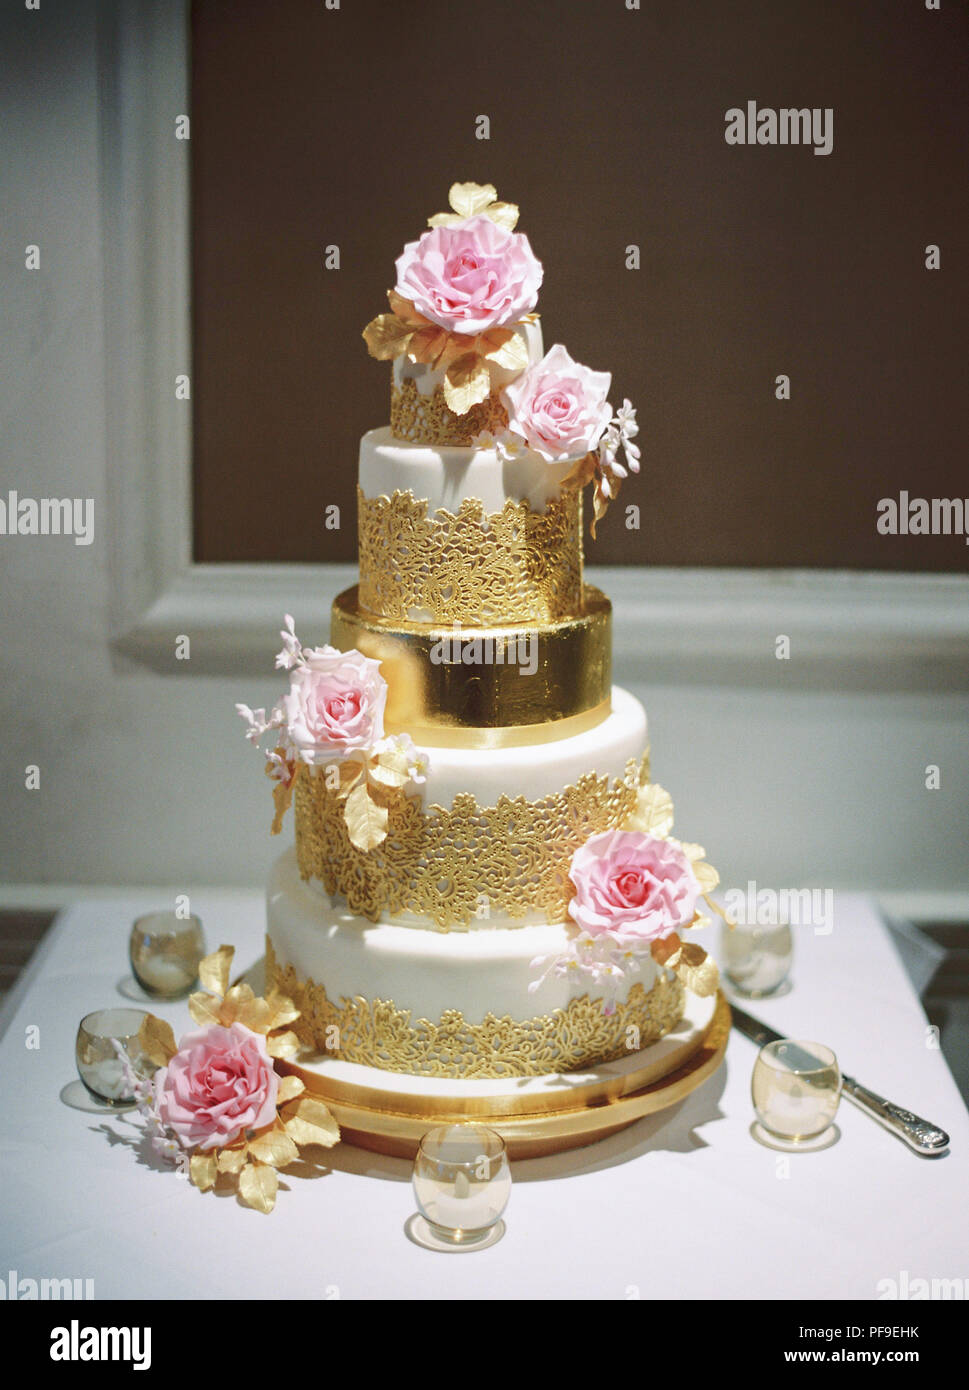 gold white pink tiered wedding cake with roses - Stock Image